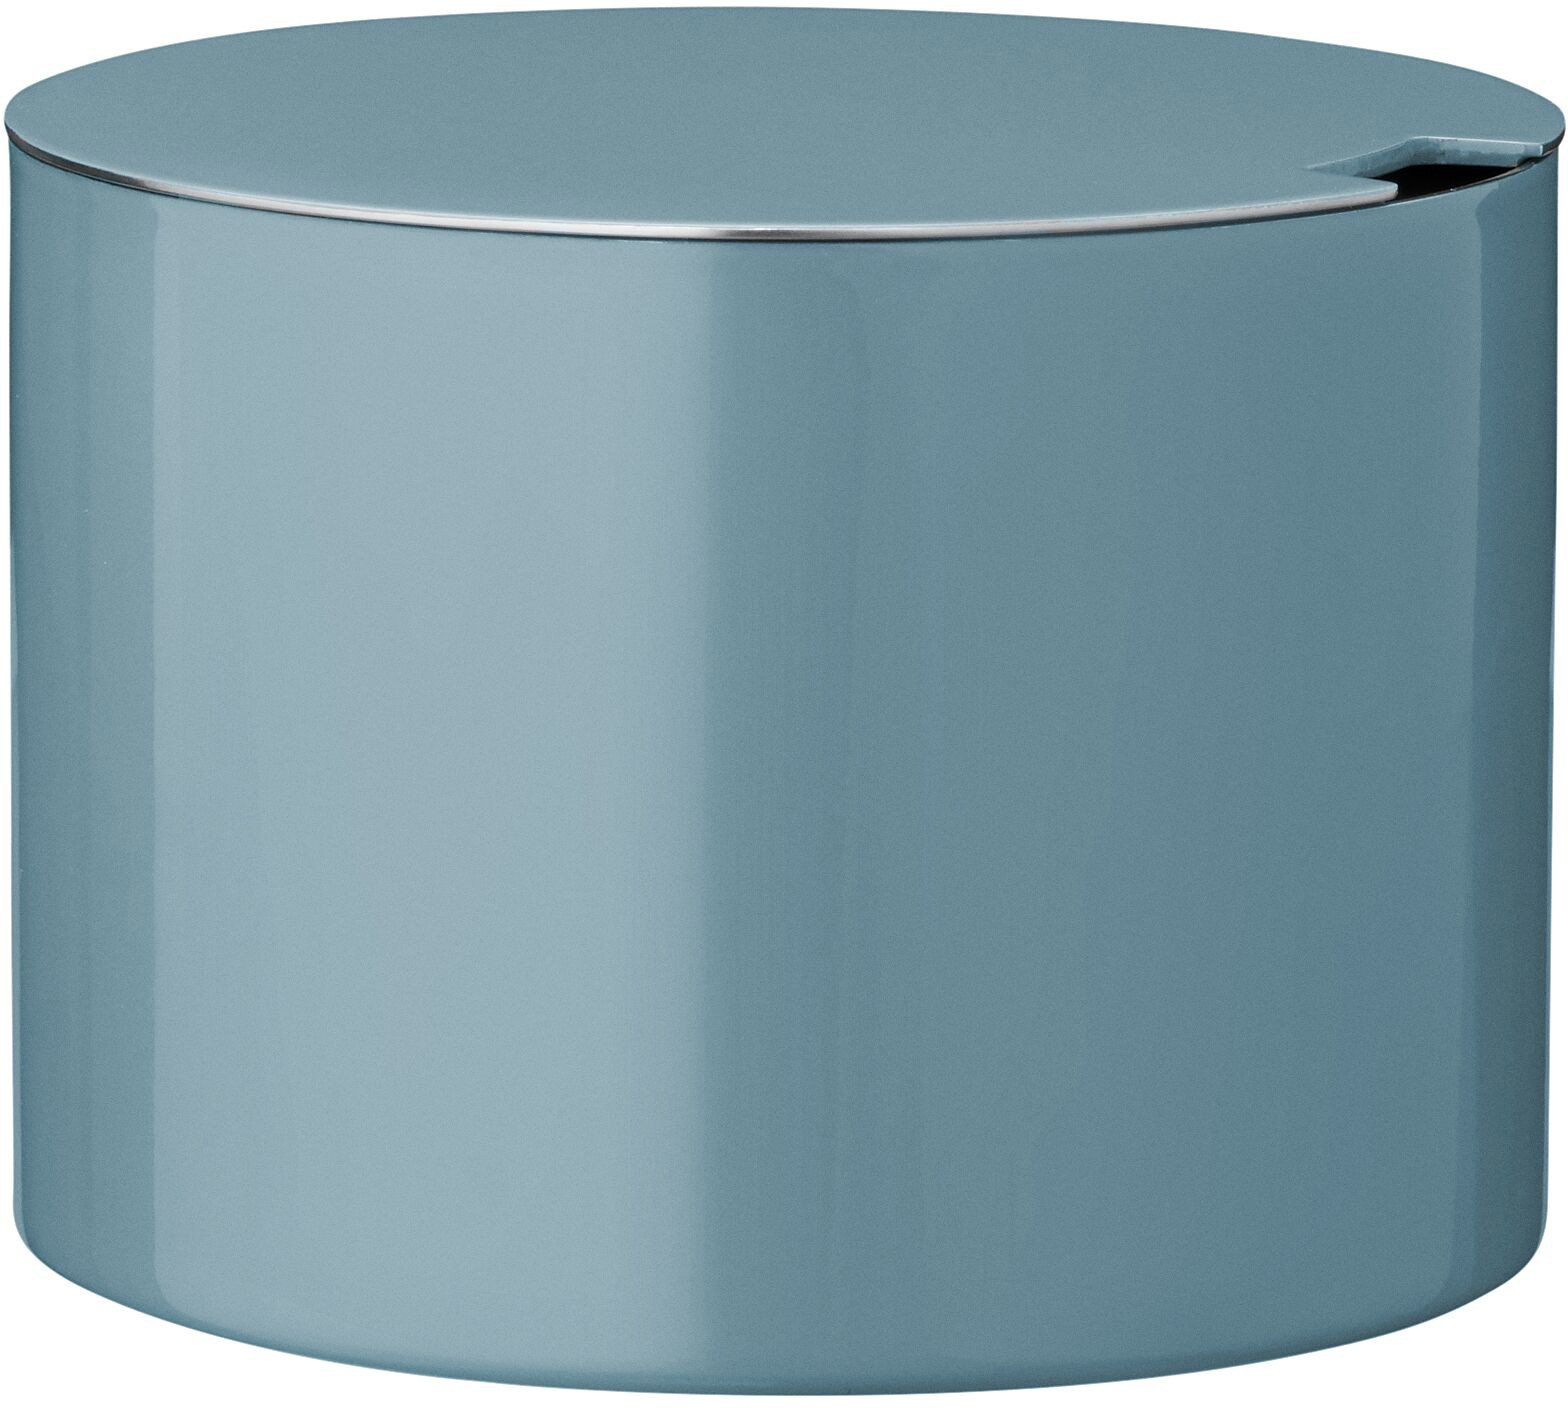 Cylinda-line 50th anniversary Sugar Bowl Turquoise by A. Jacobsen for Stelton